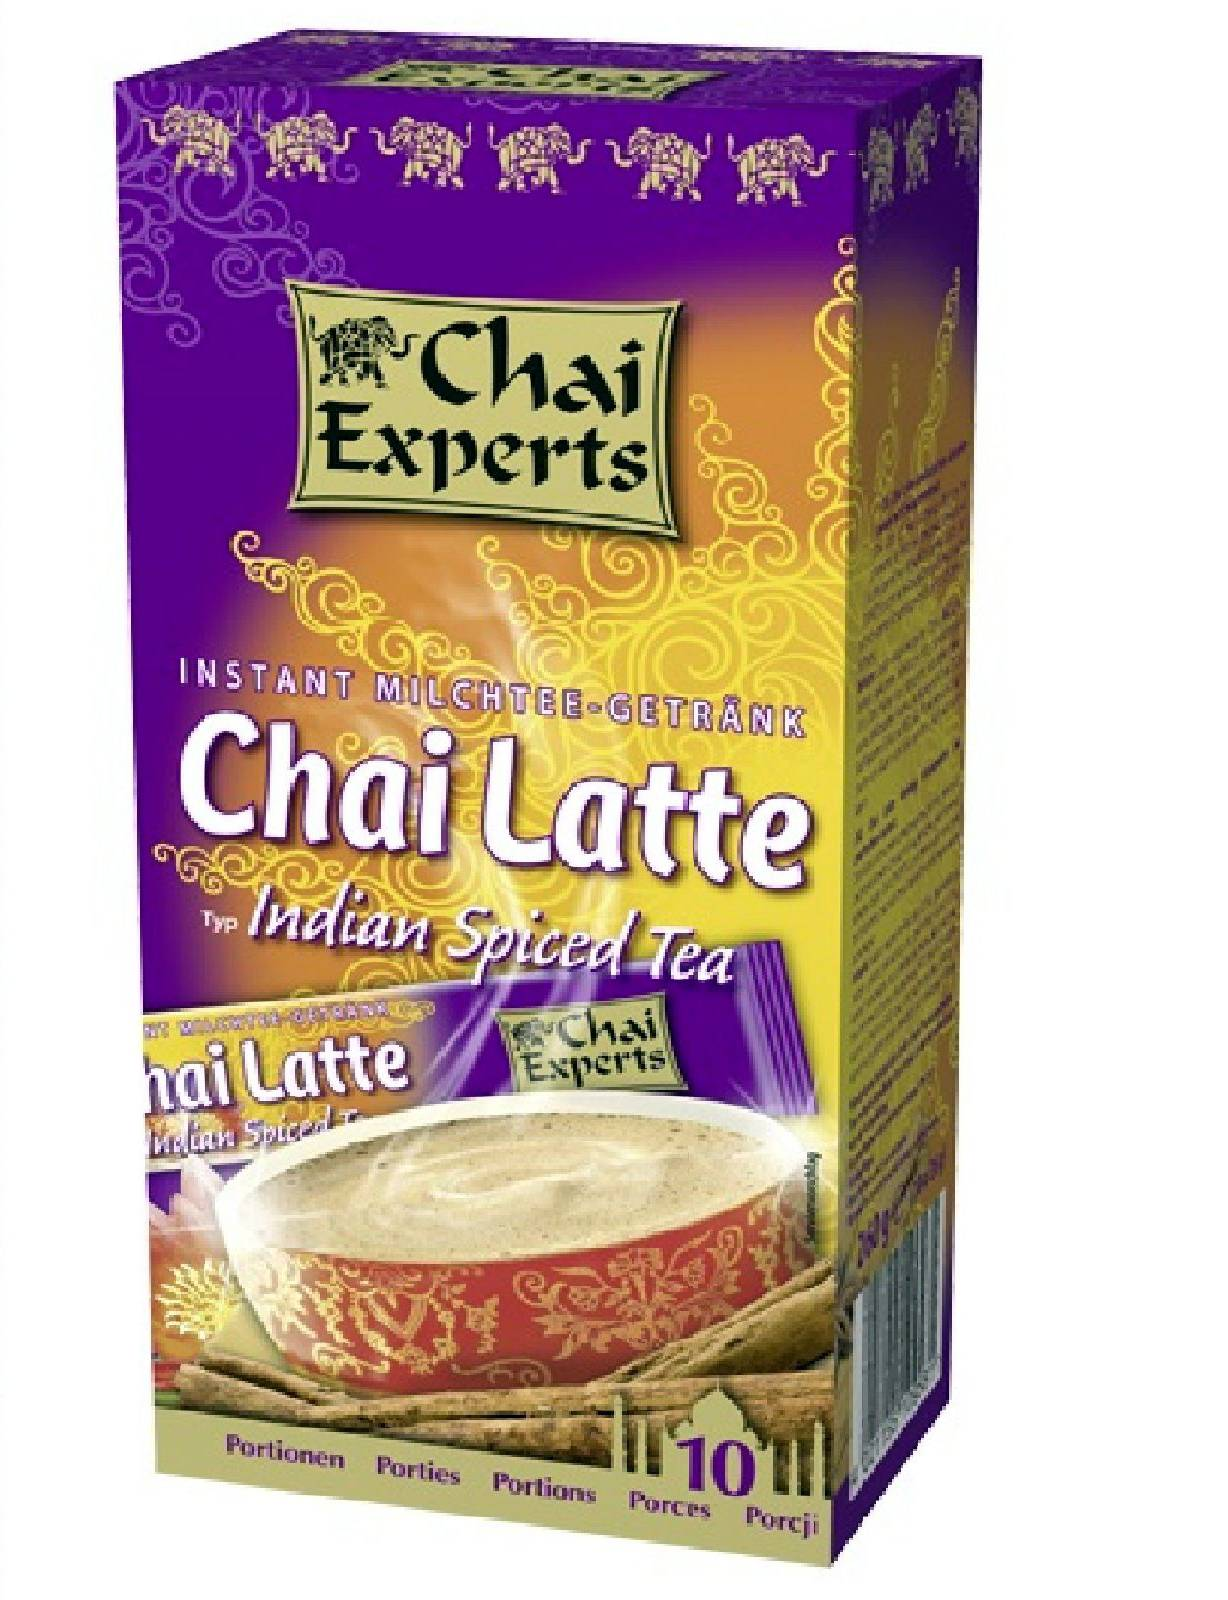 Chai Experts Chai Latte Indian Spiced Tea 10 x 26g